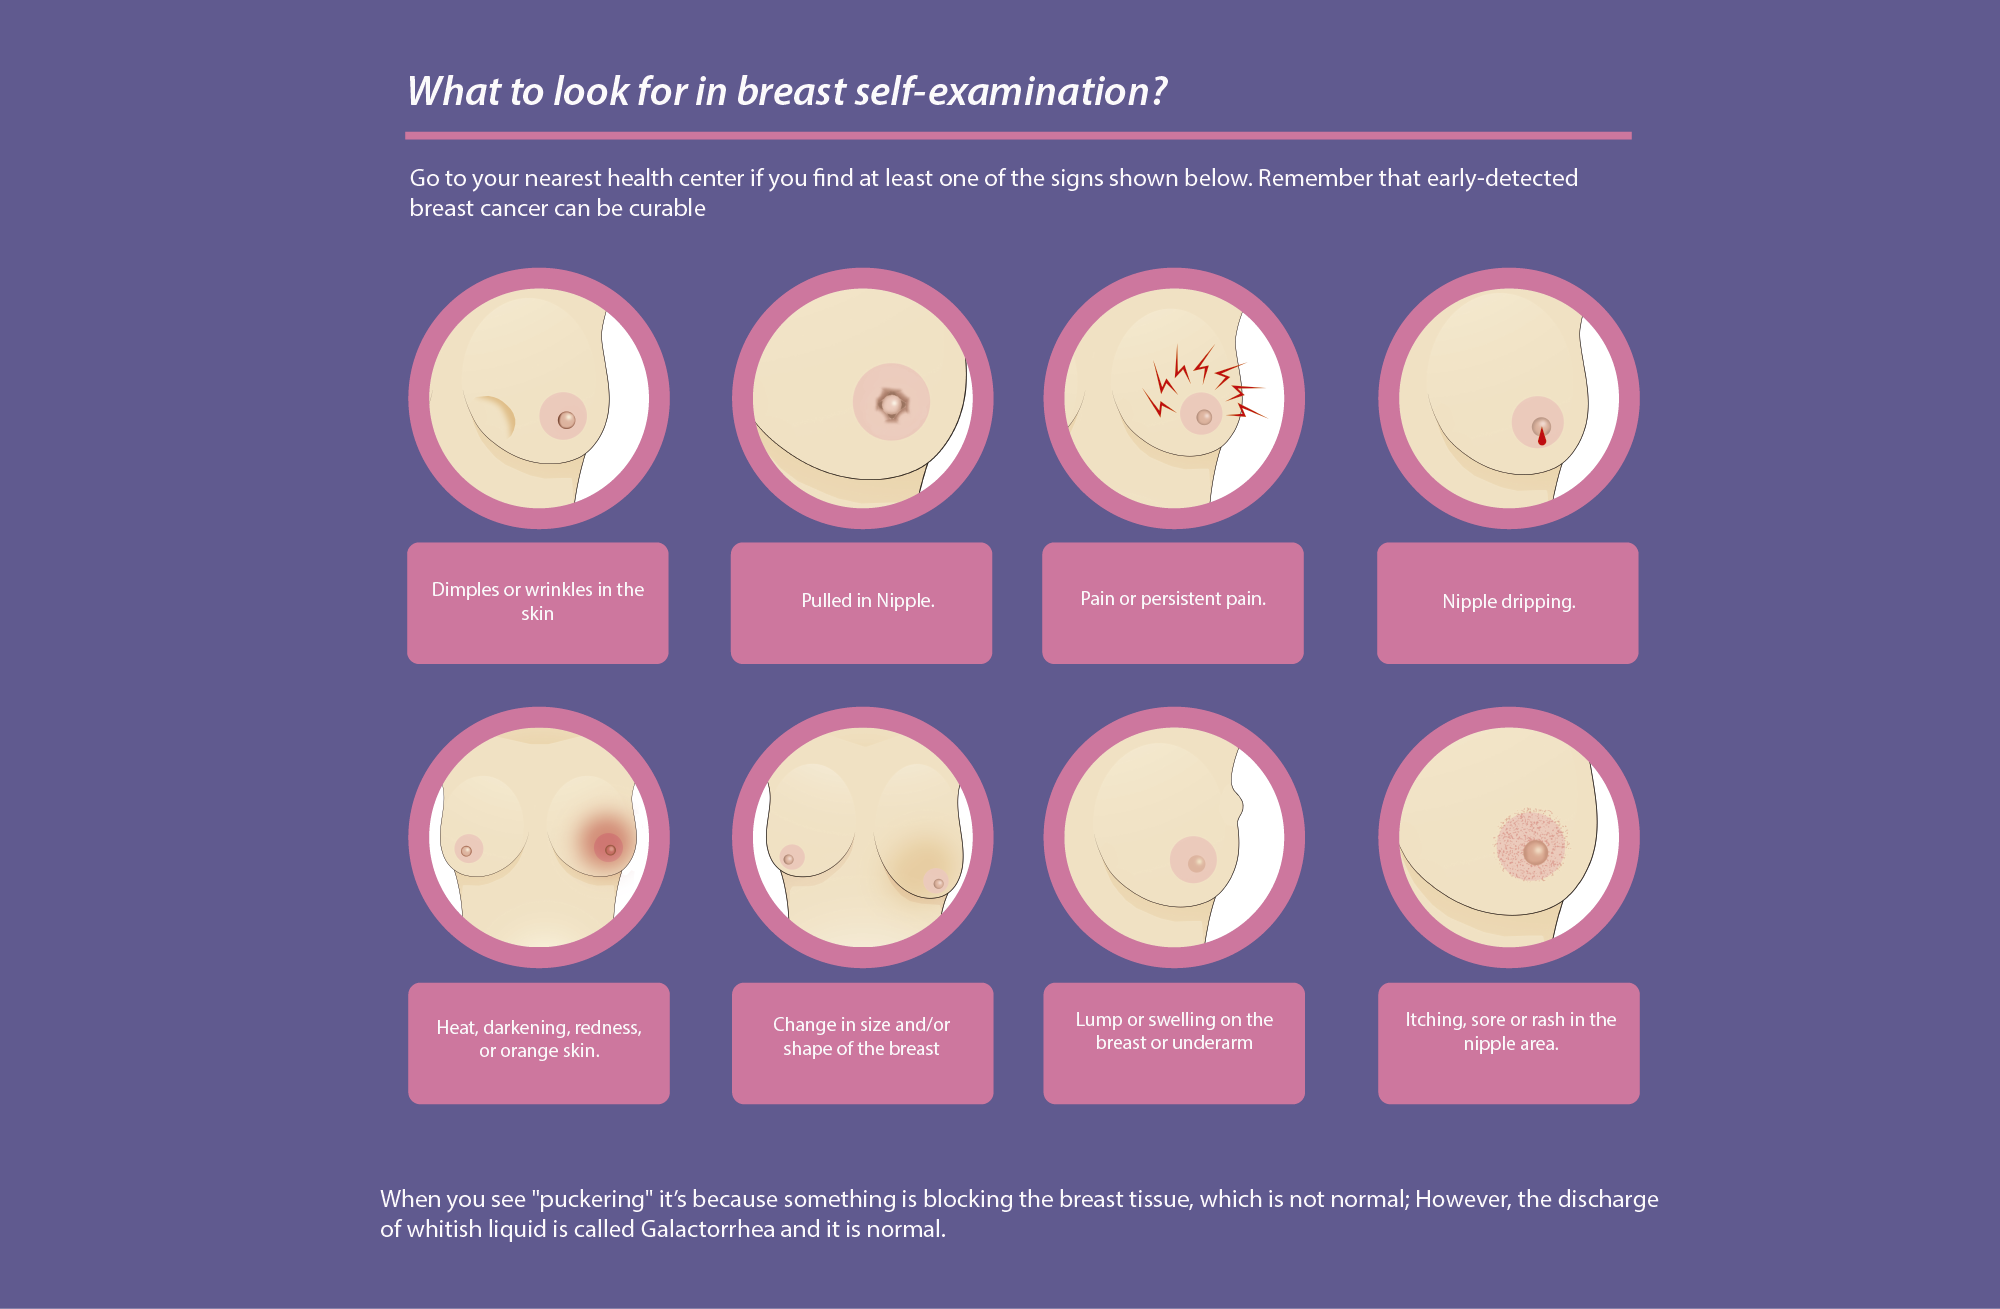 Building evidence for abbreviated mri in women with dense breasts